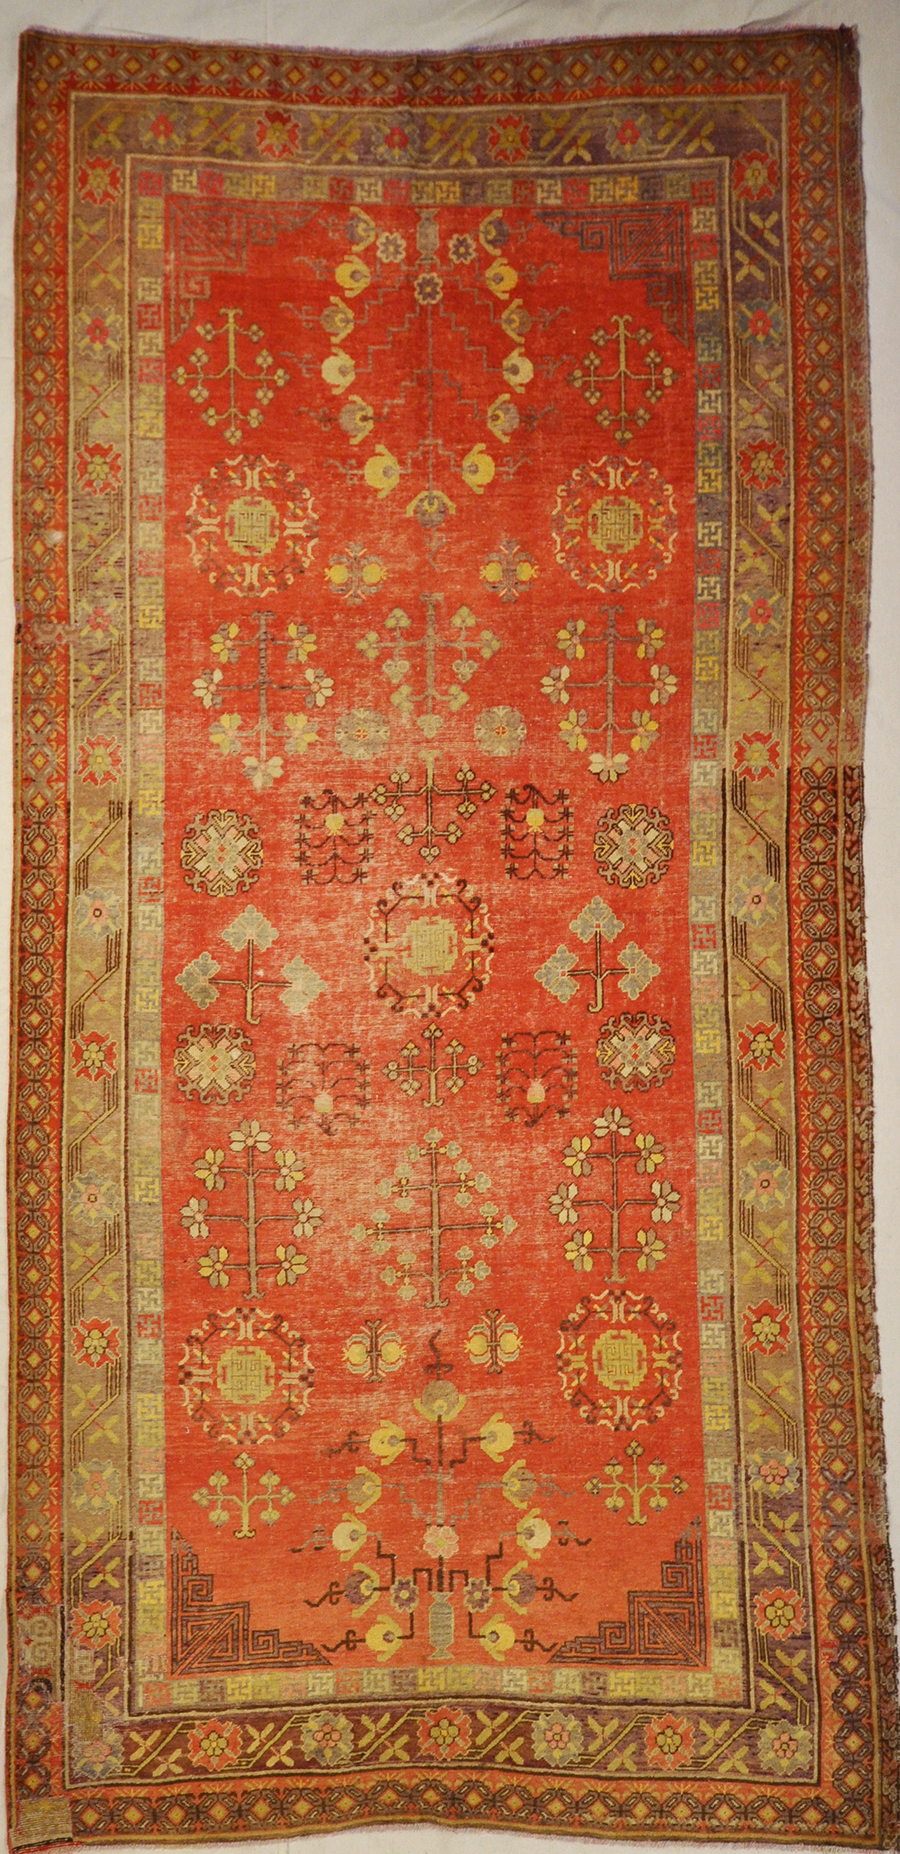 Antique Khotan Rugs & More Oriental Carpets